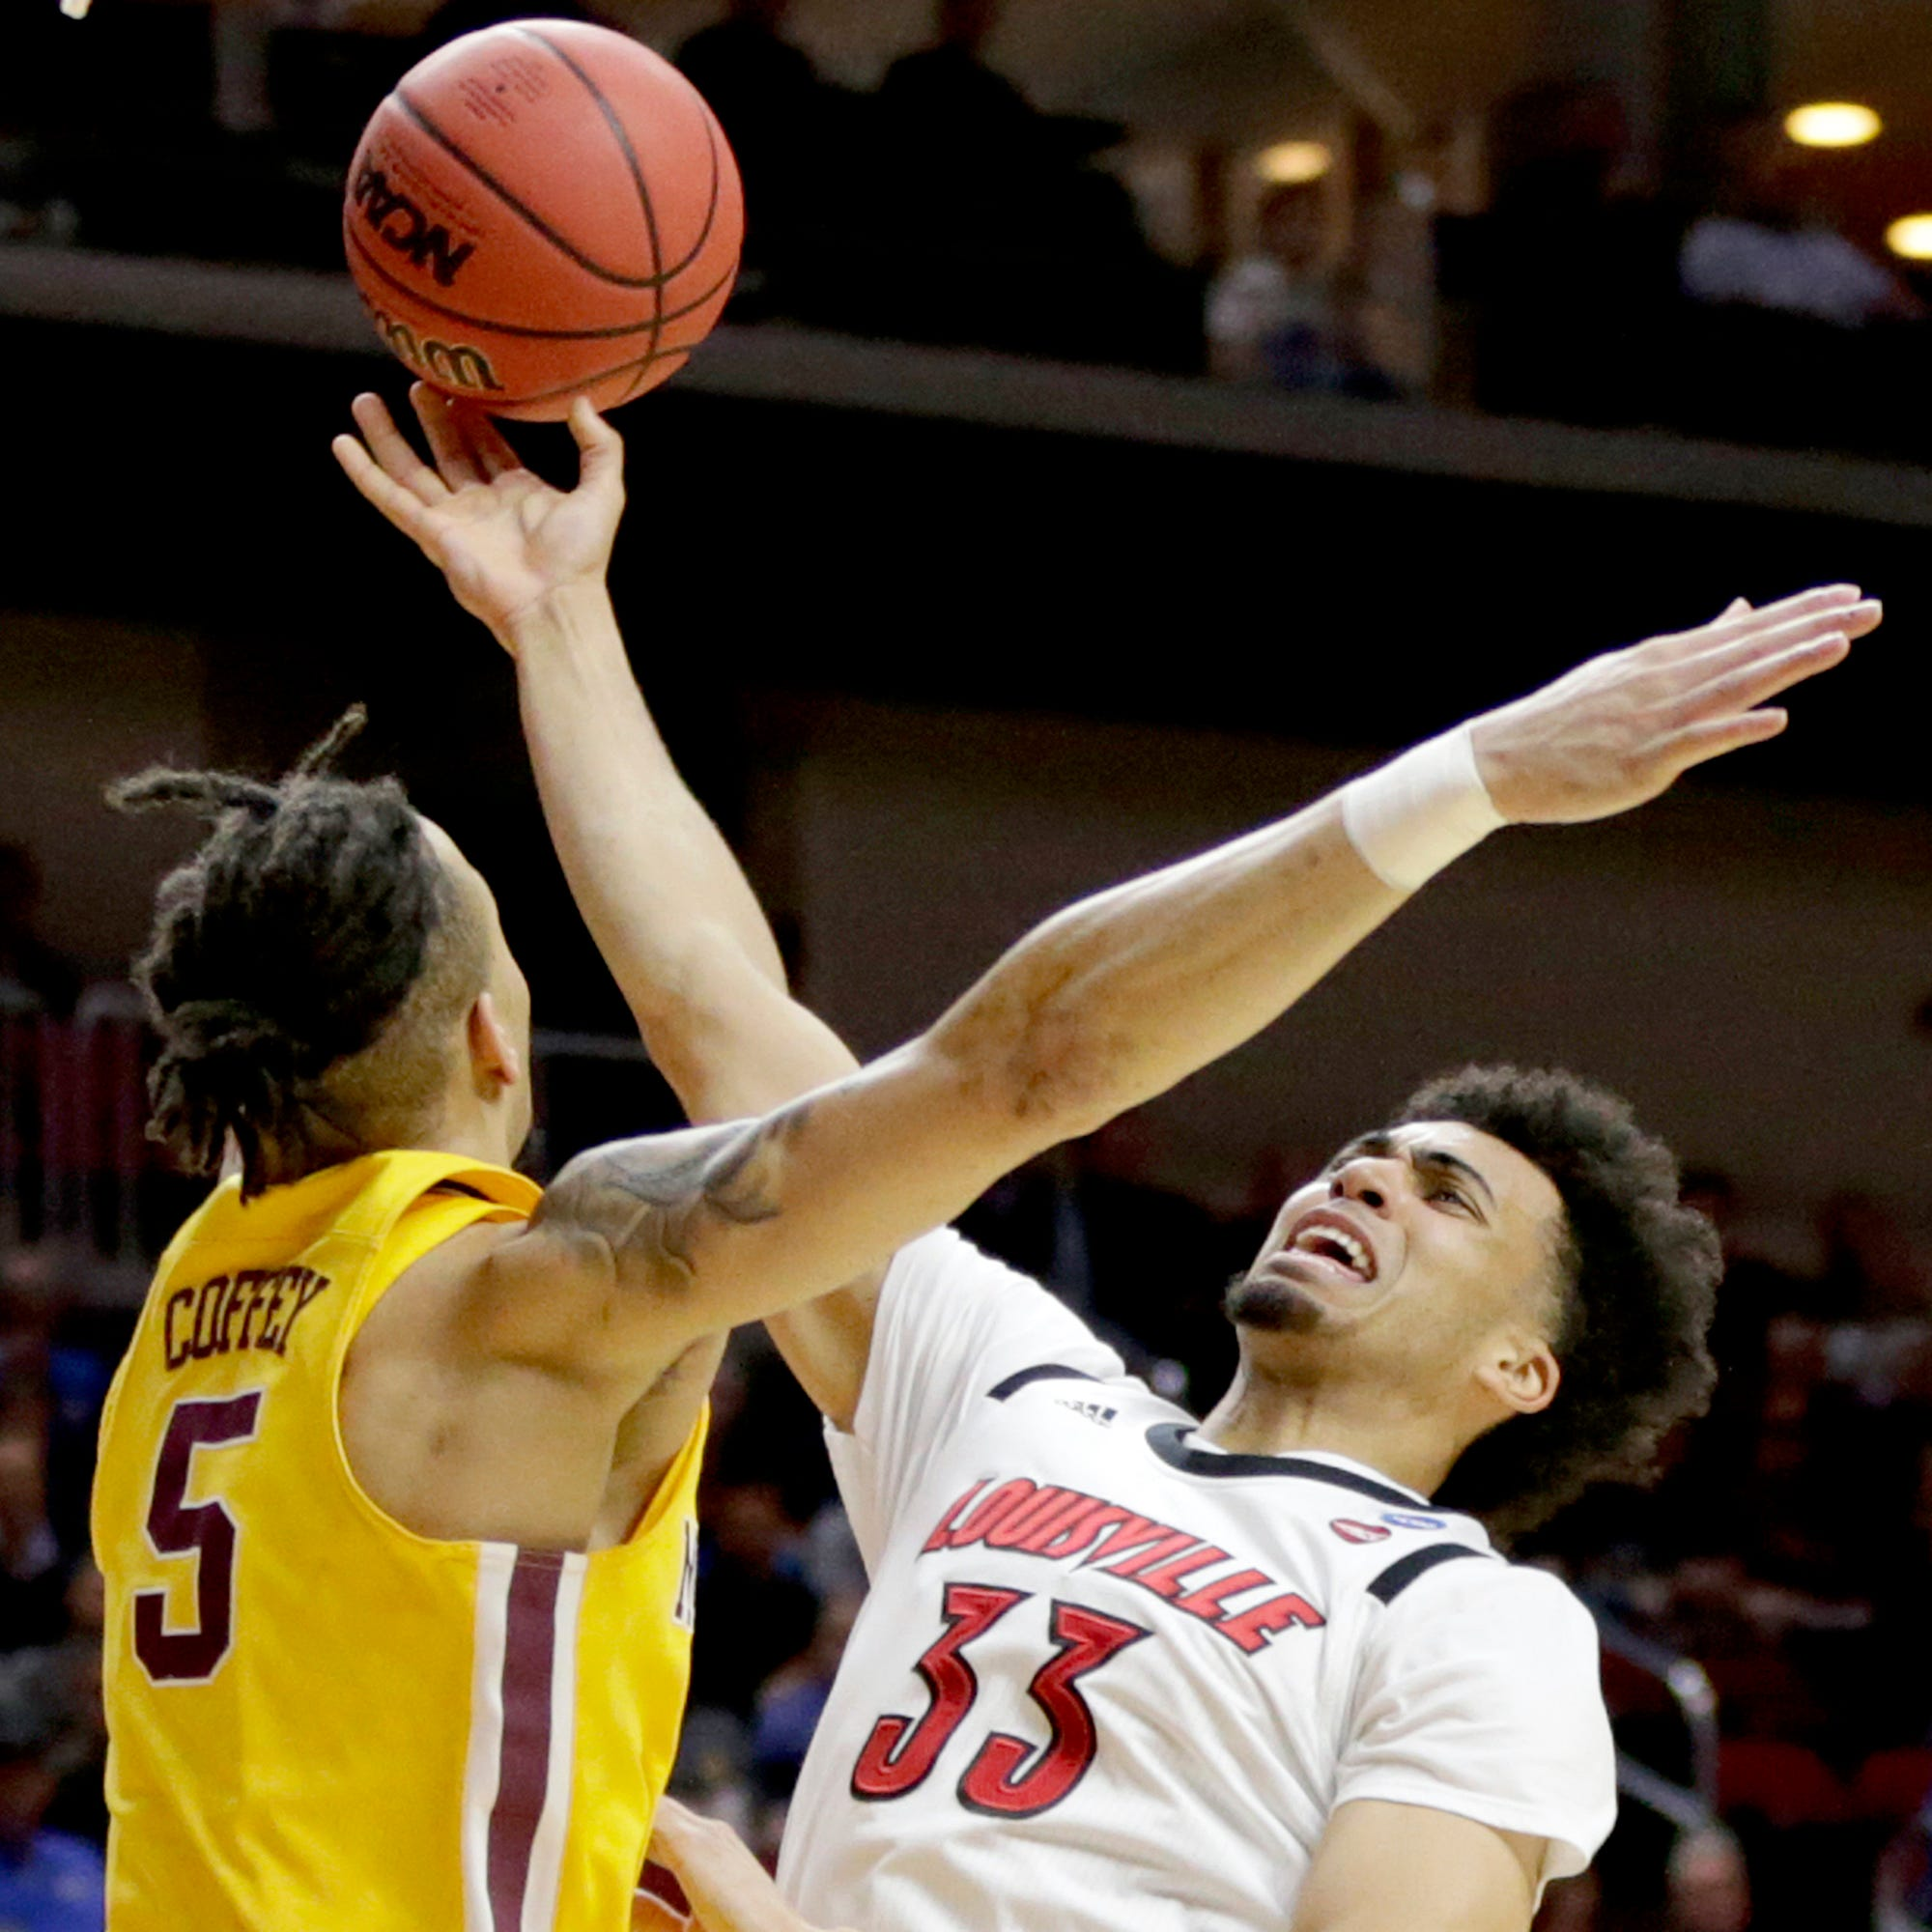 Live coverage: Get Louisville vs. Minnesota NCAA Tournament game updates